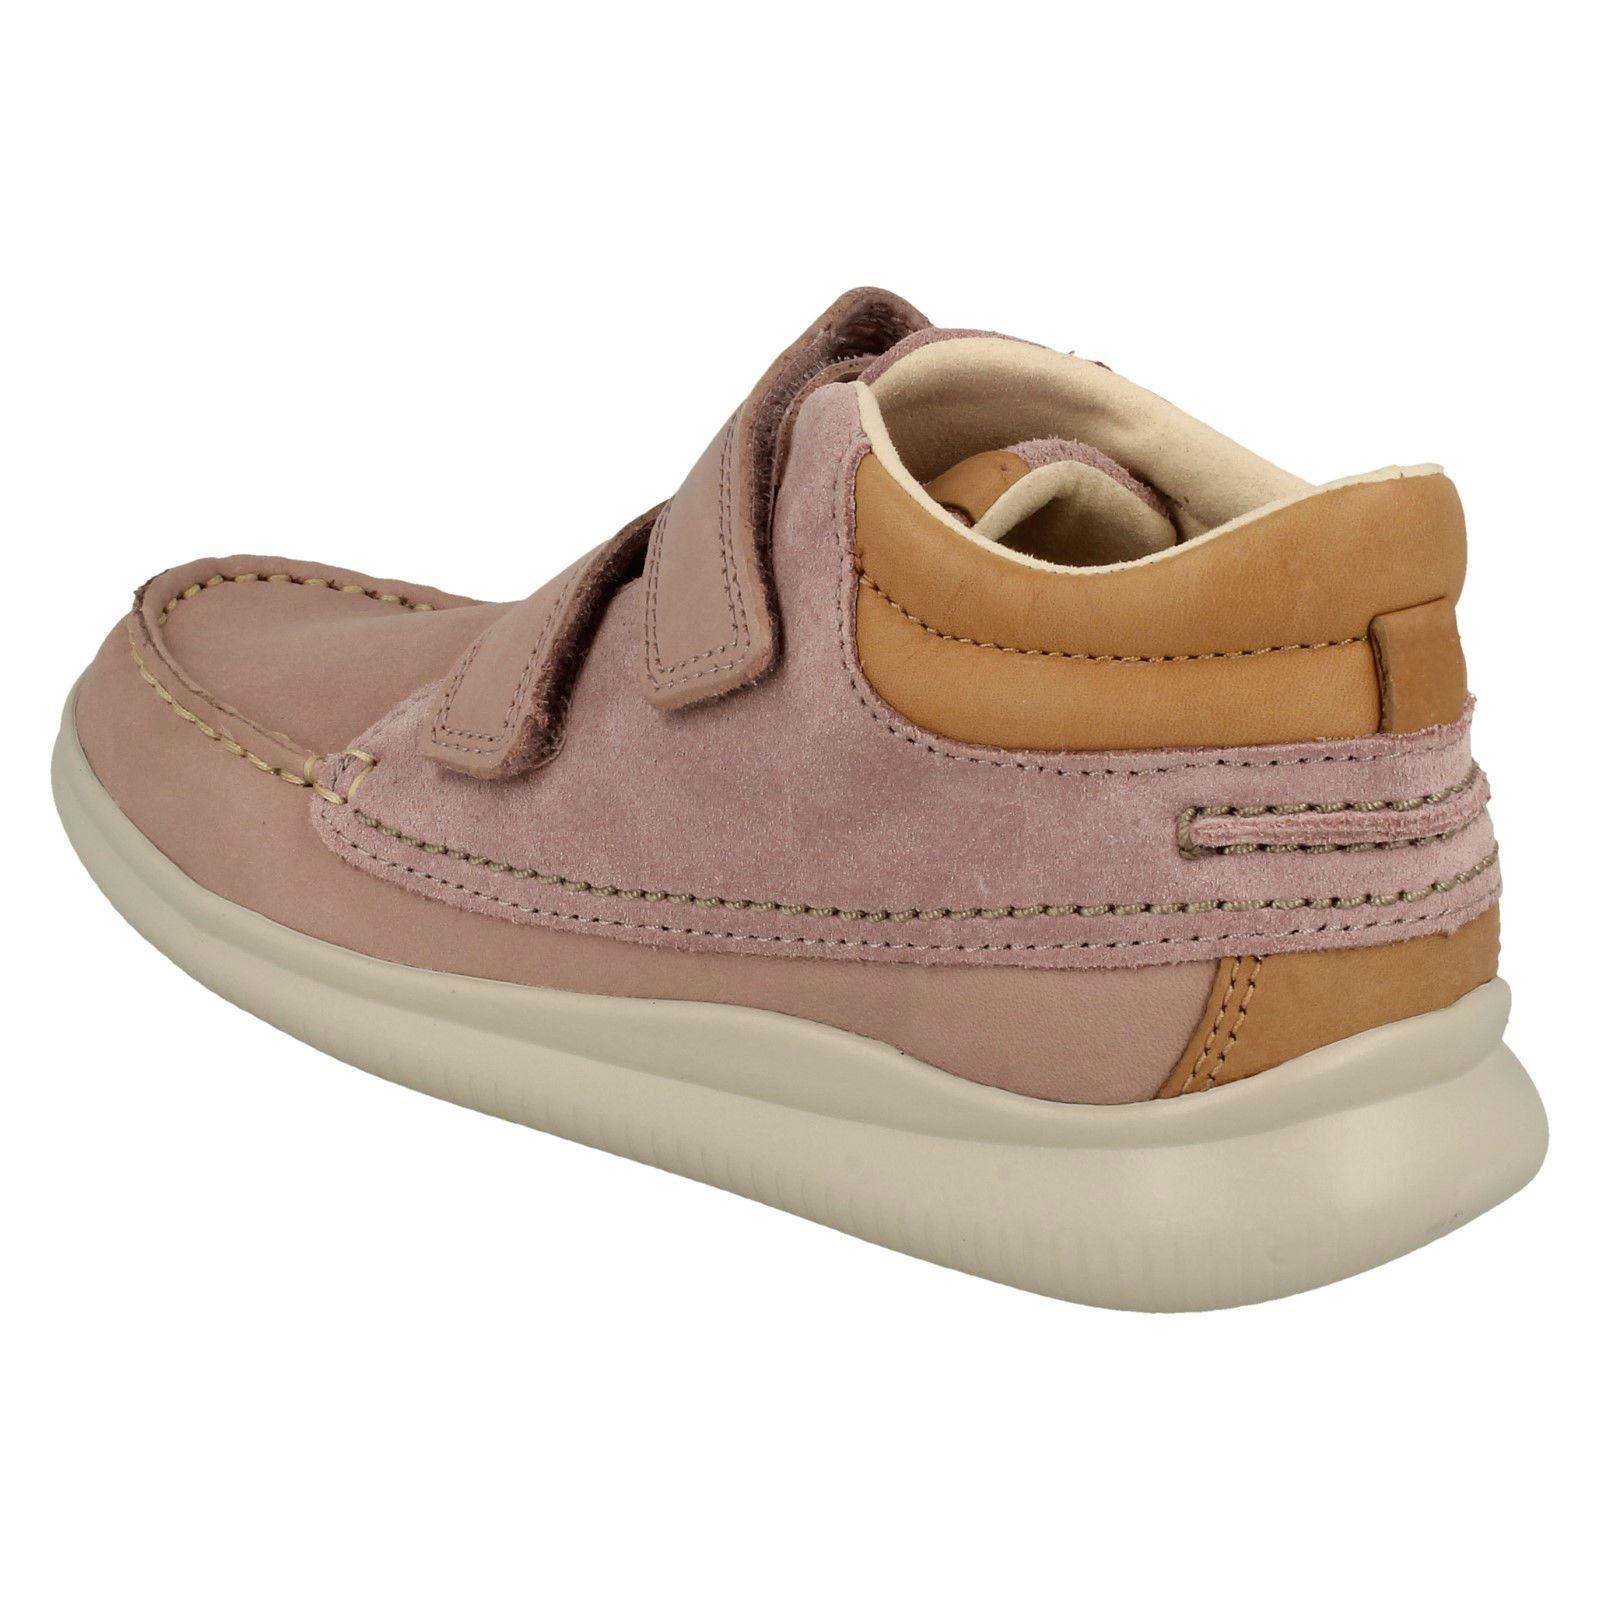 Girls Clarks Crest Tuktu Casual Ankle Boots